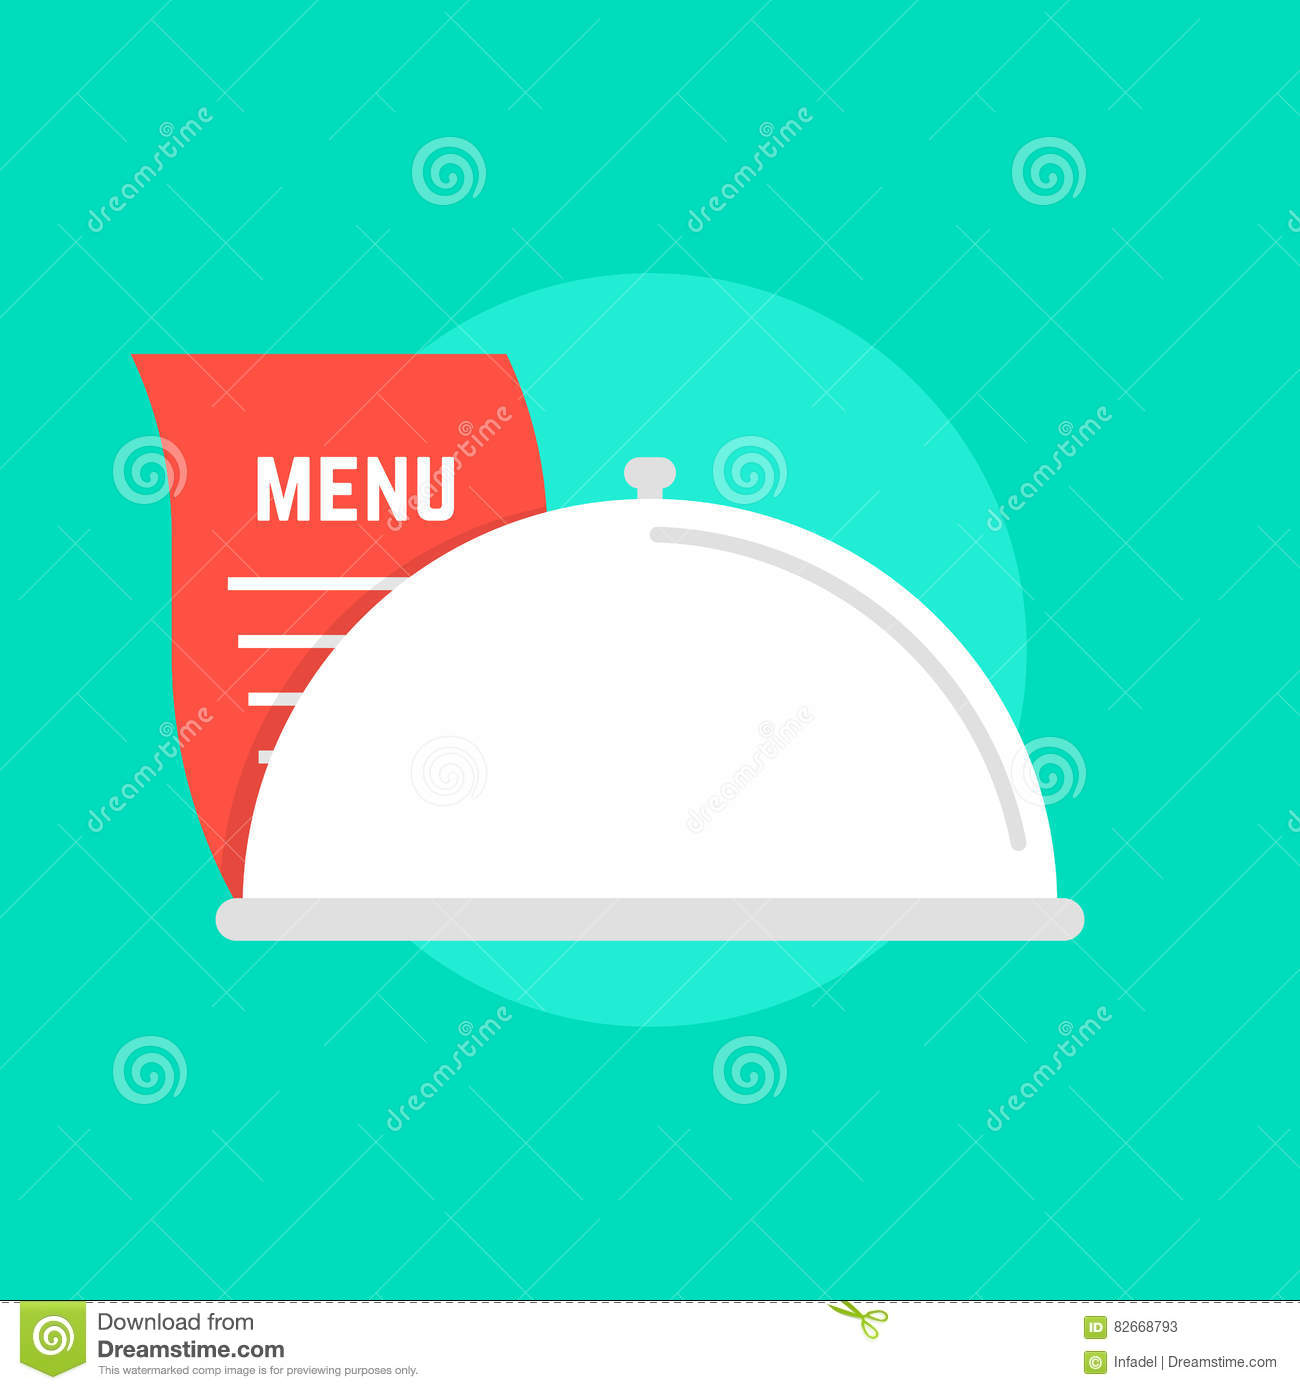 Diner Delivery White Dish Icon With Menu Stock Vector Illustration Of Catering